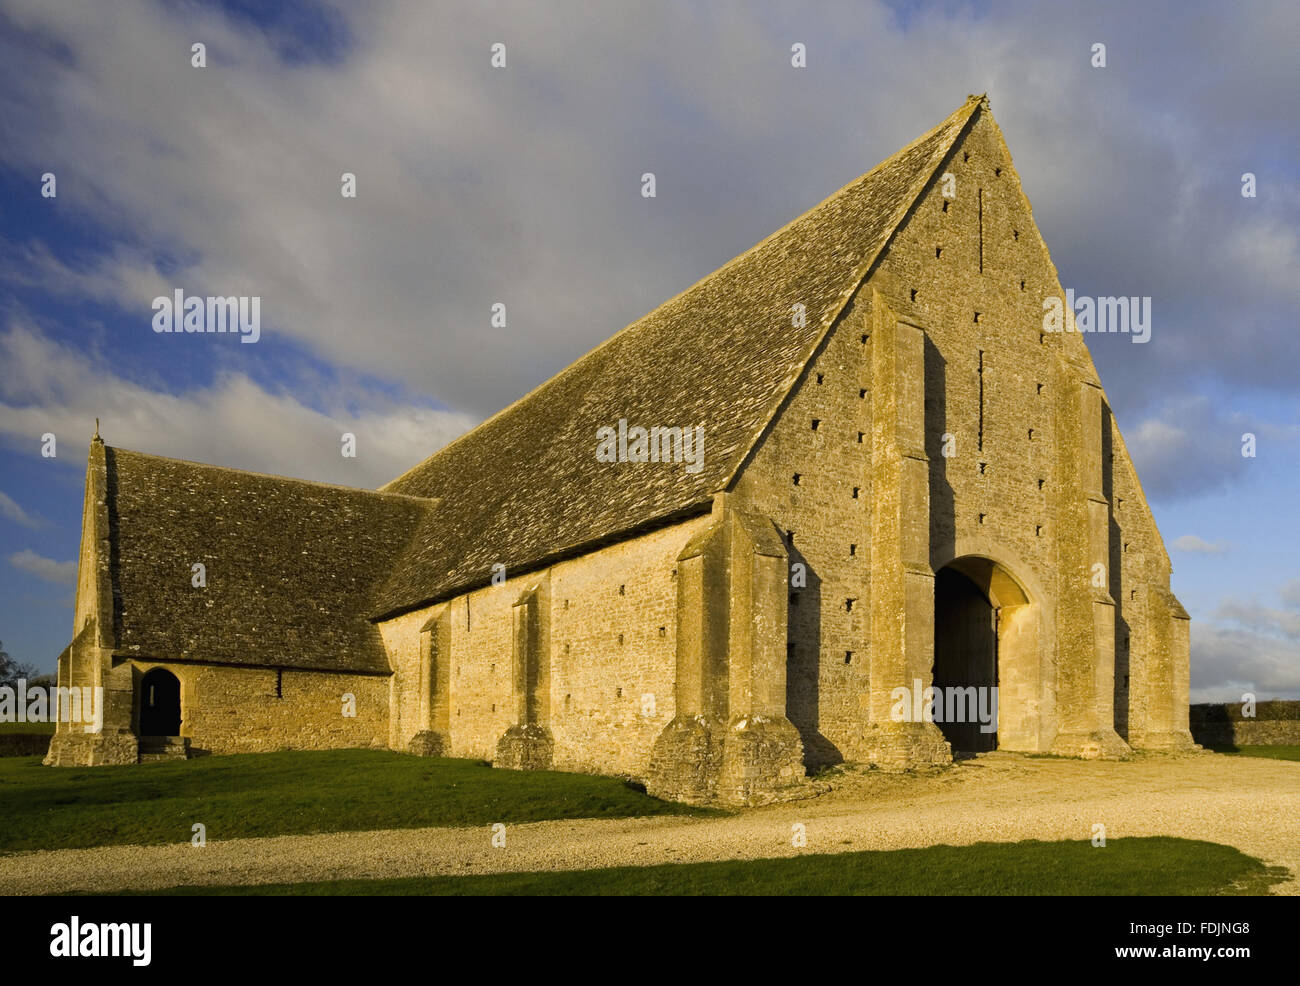 The mid-thirteenth century monastic Great Coxwell Barn near Faringdon in Oxfordshire. The large door at the end of the barn was an eighteenth-century ... & The mid-thirteenth century monastic Great Coxwell Barn near ...